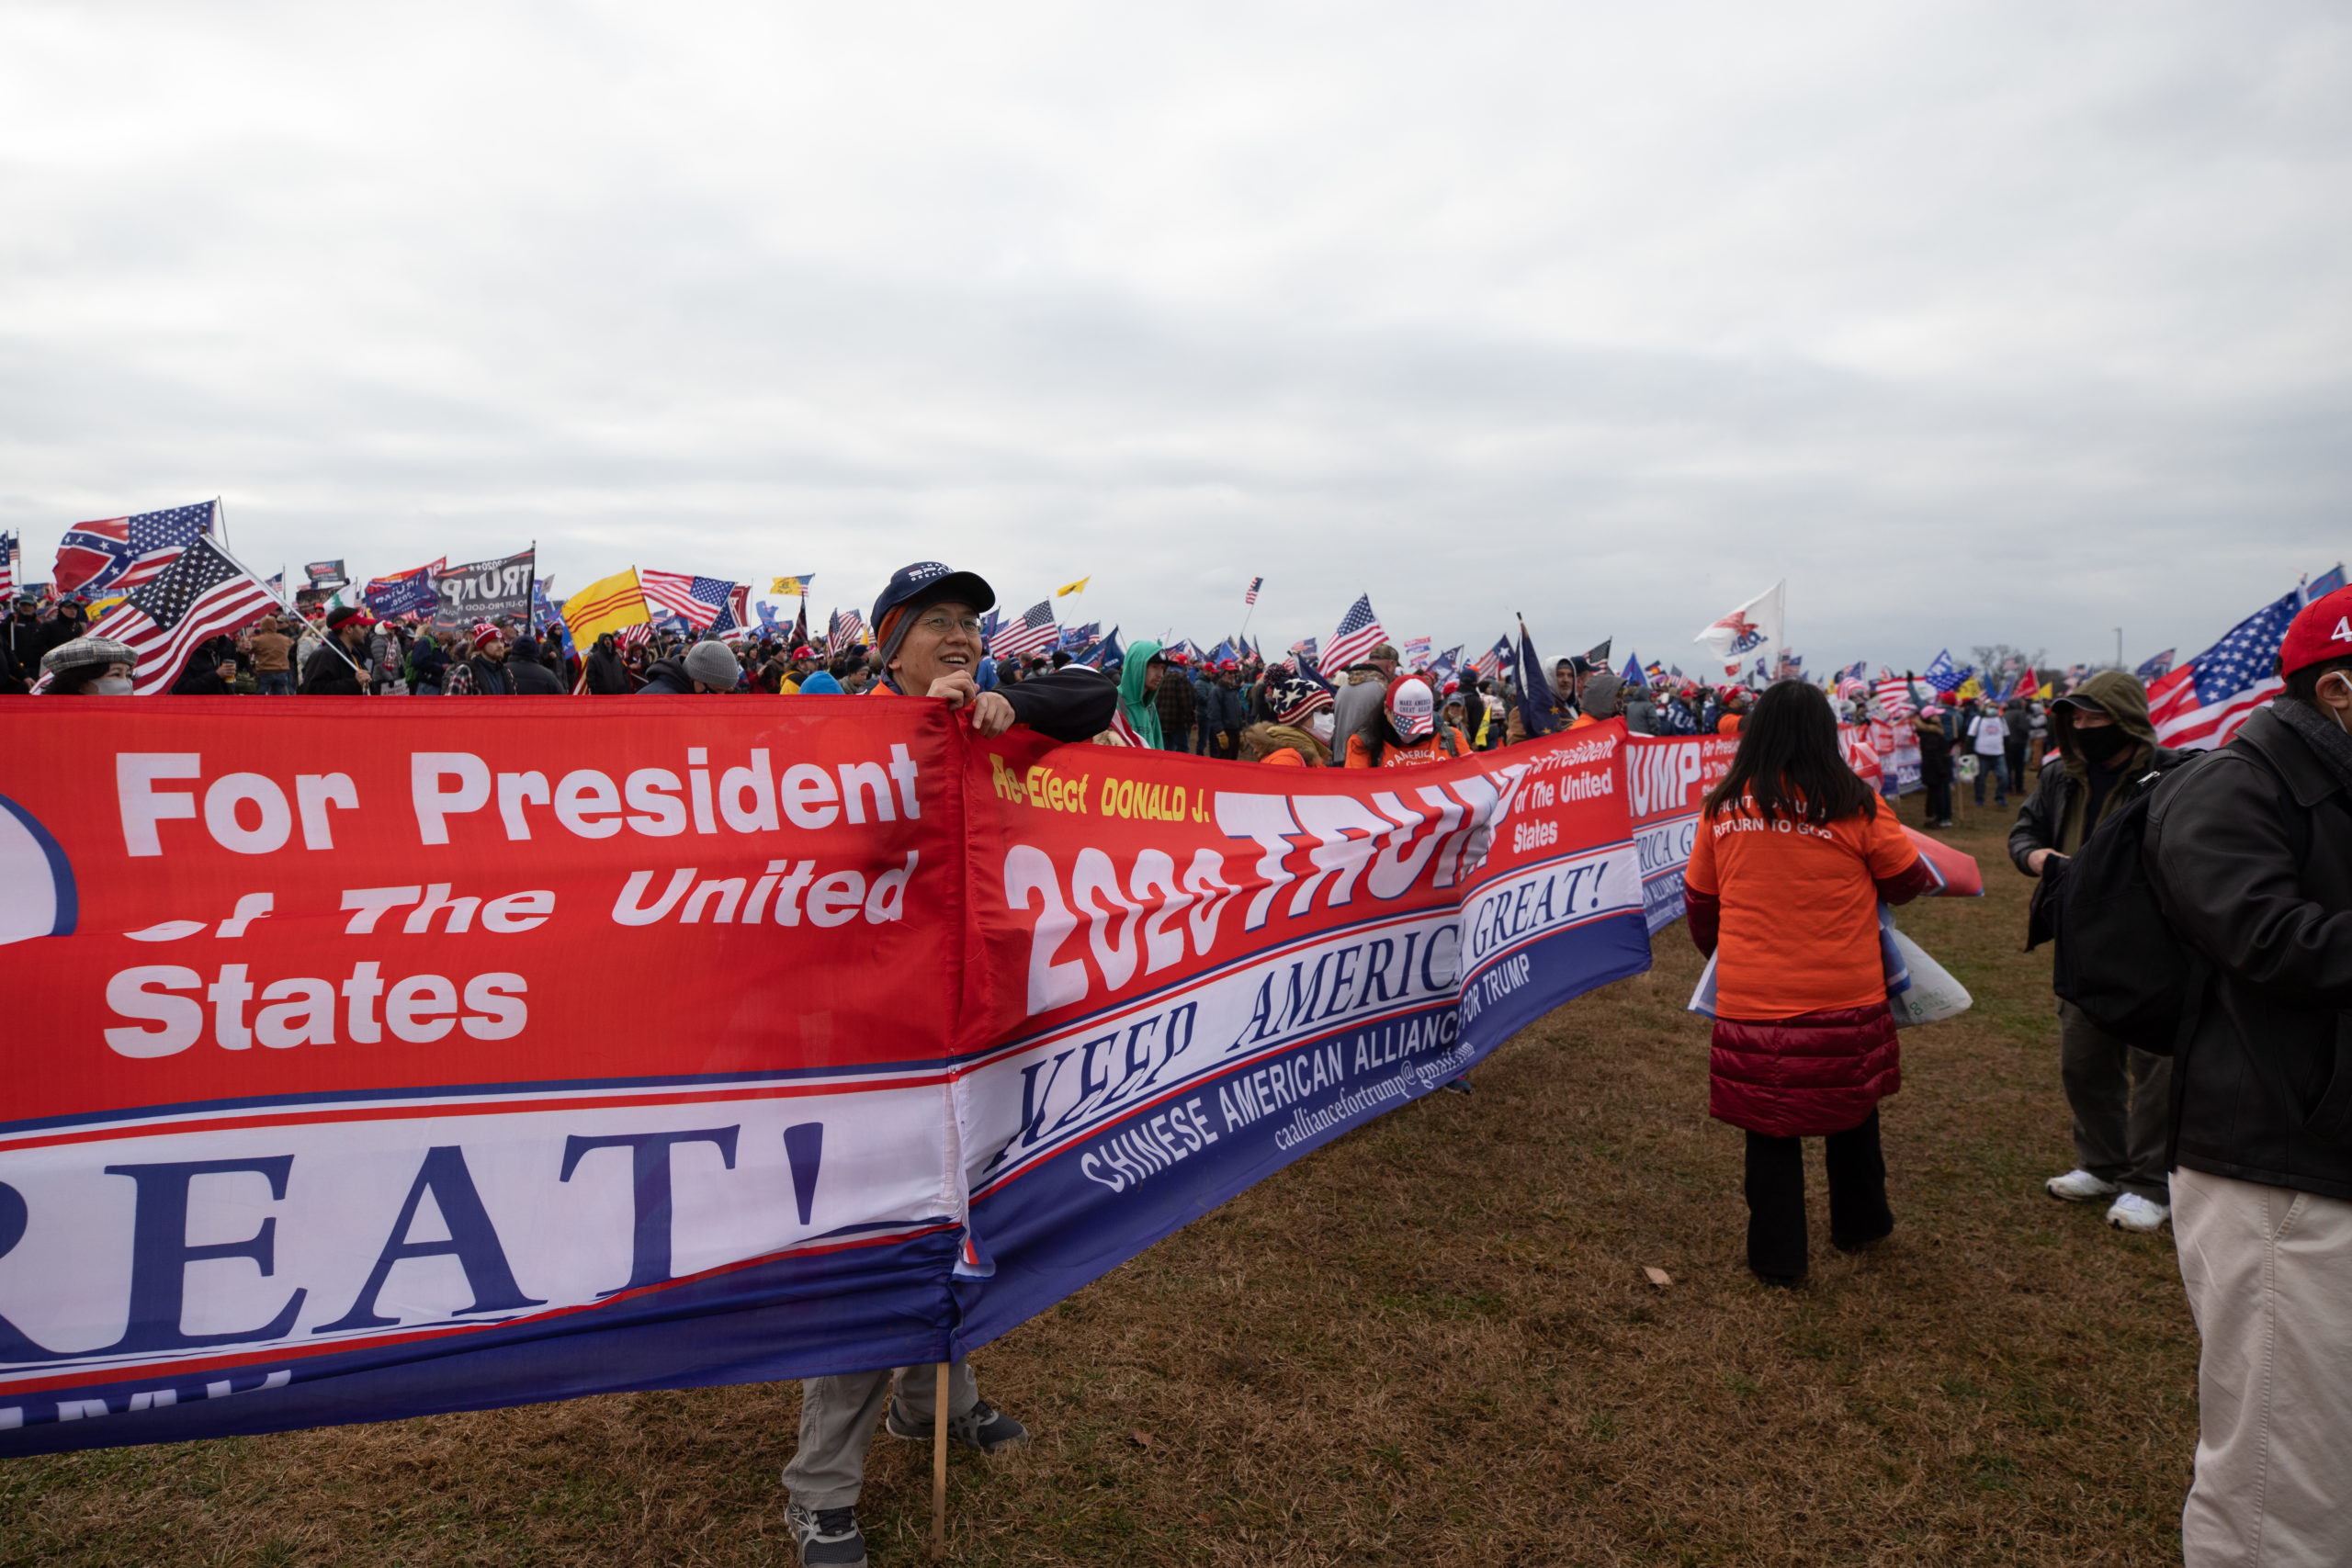 A man stood behind a long line of banners expressing support for President Donald Trump by the Chinese American Alliance in Washington, D.C. on Jan. 6, 2021. (Kaylee Greenlee - Daily Caller News Foundation)